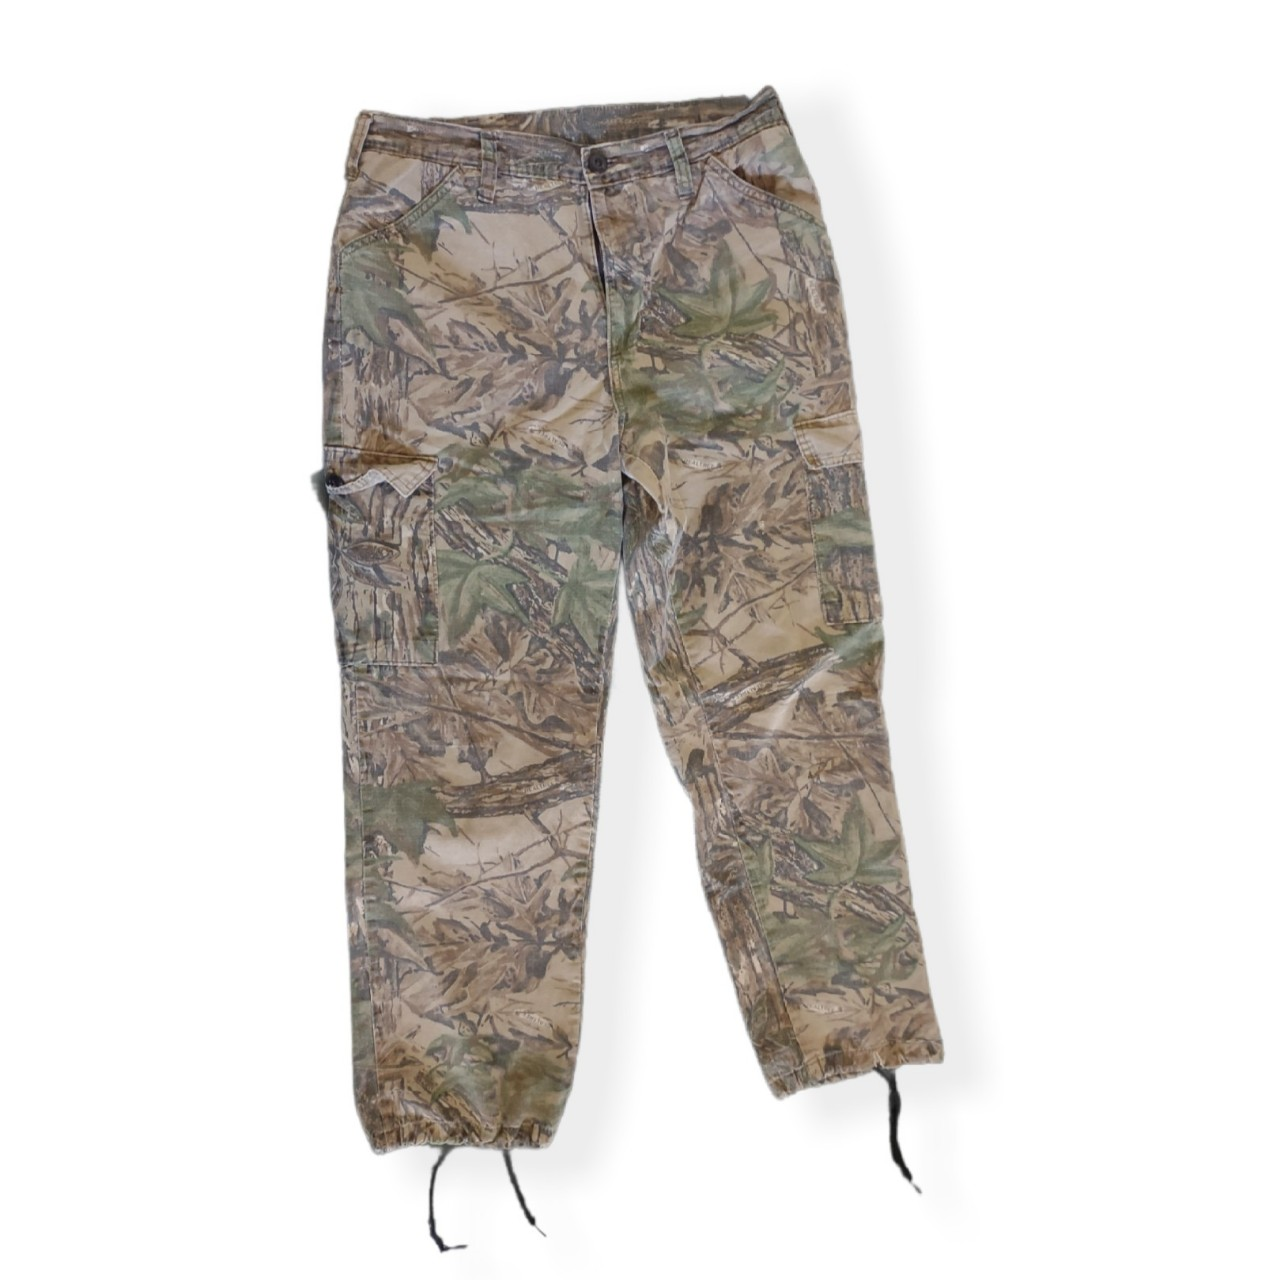 Product Image 1 - Thrashed distressed realtree camo cargo